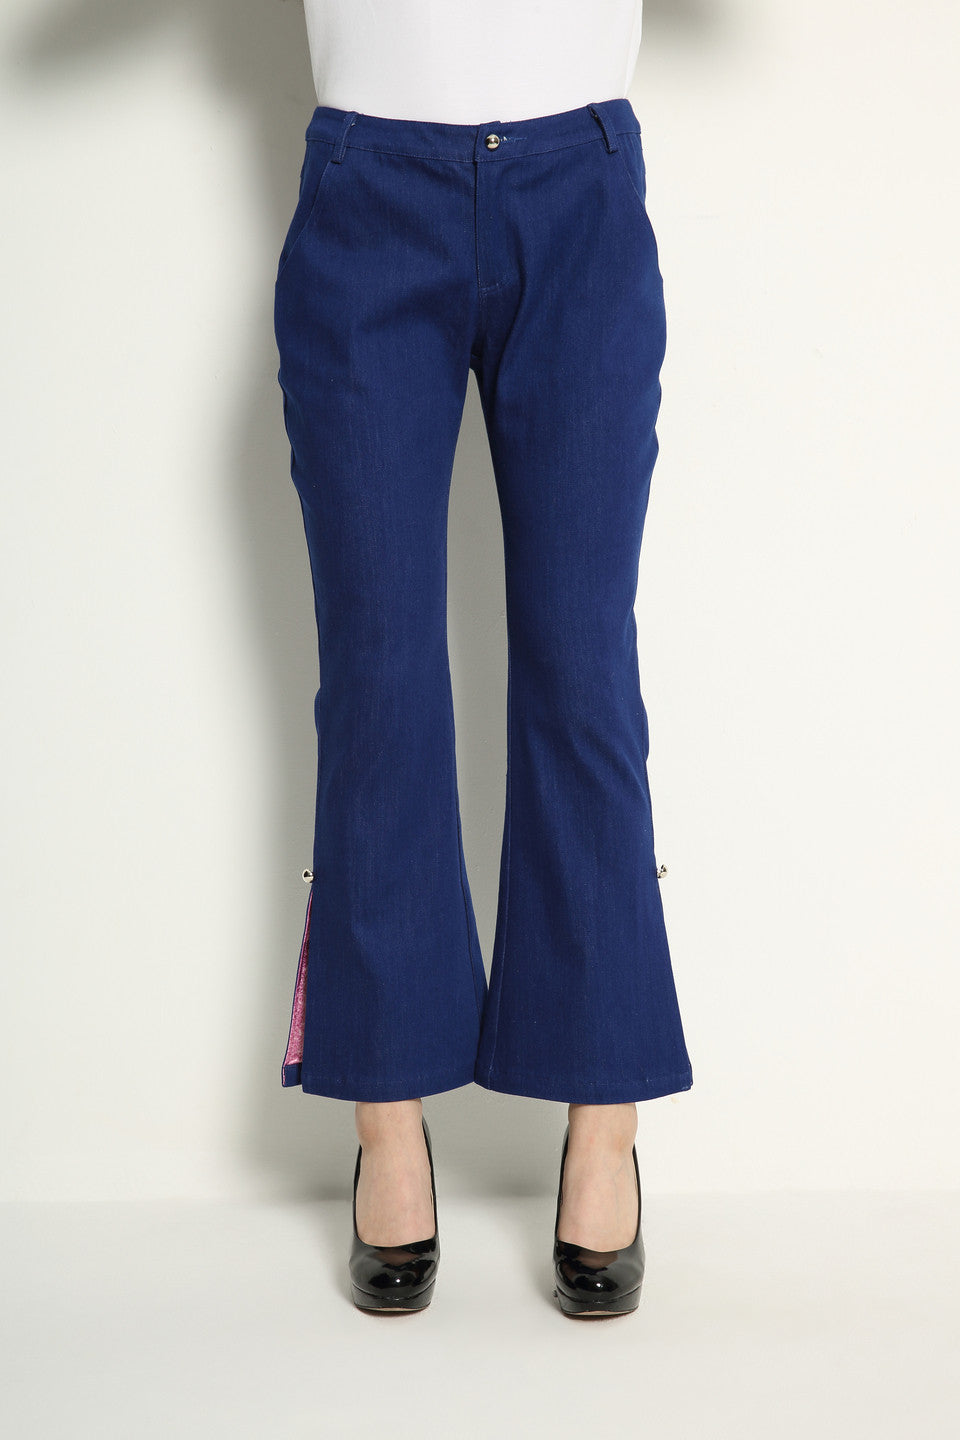 Slit Flare Jeans With Color Lining - GlanceZ   - 4